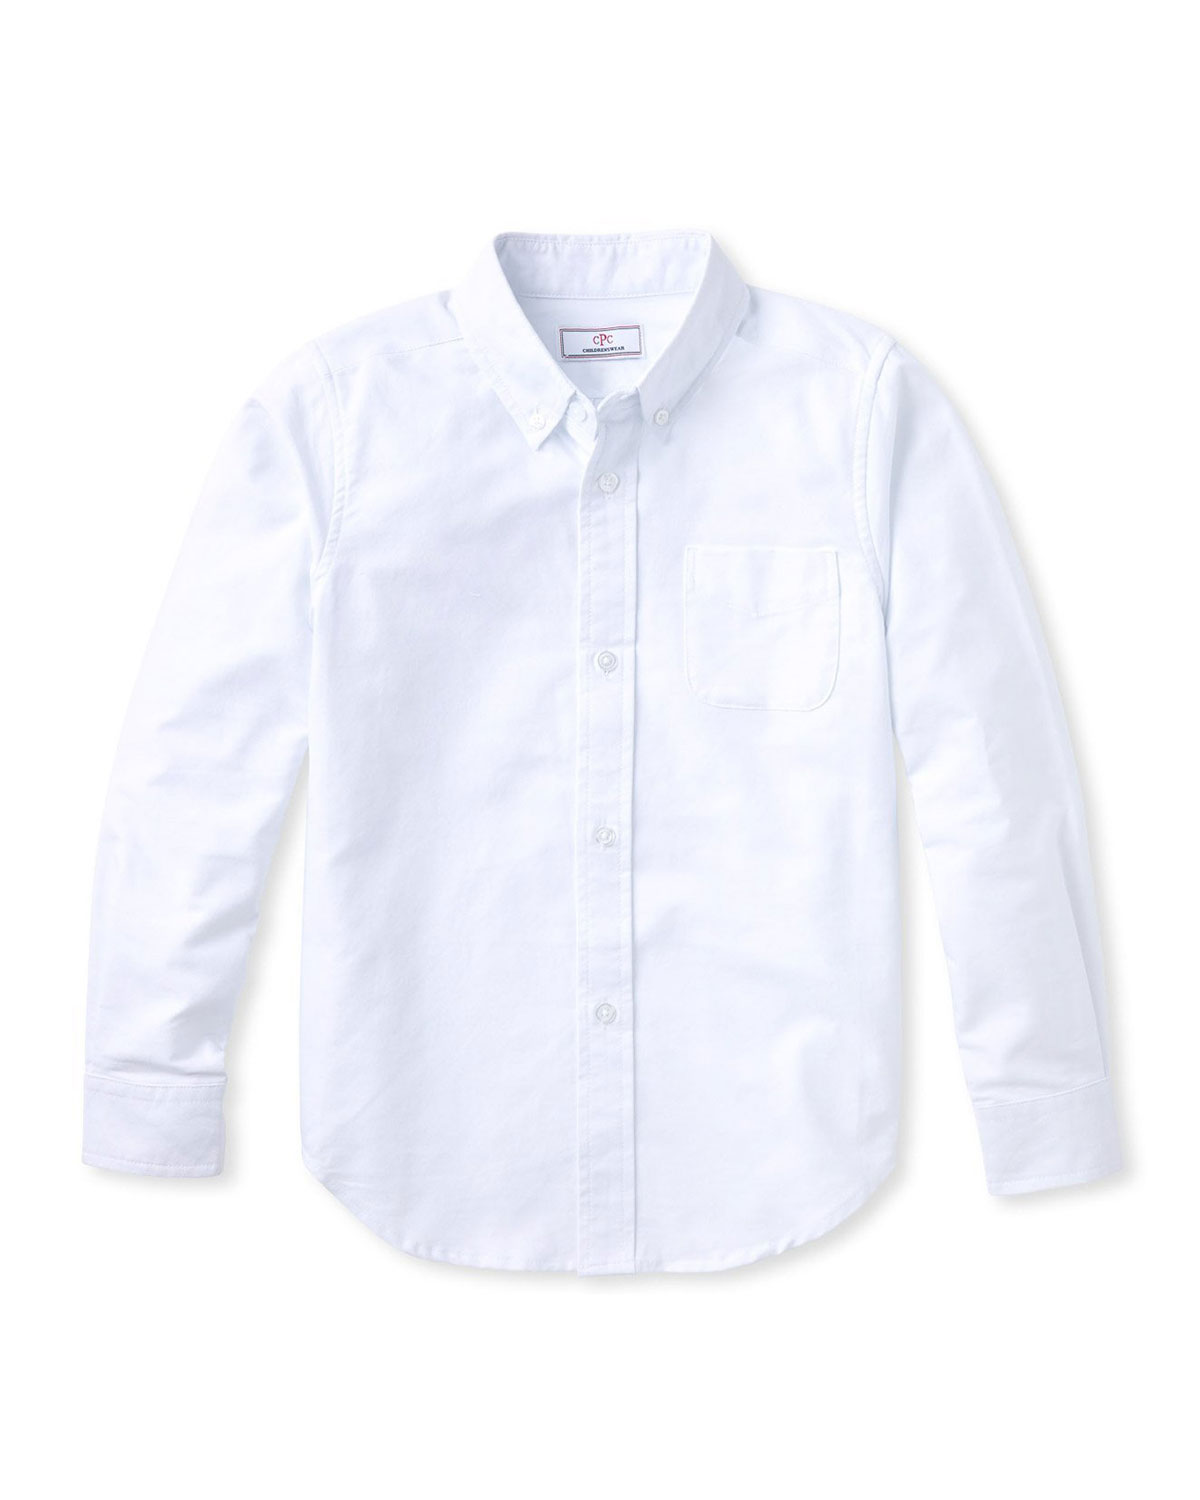 Classic Prep Childrenswear Boy's Owen Cotton Button-Down Shirt, Size 2-14